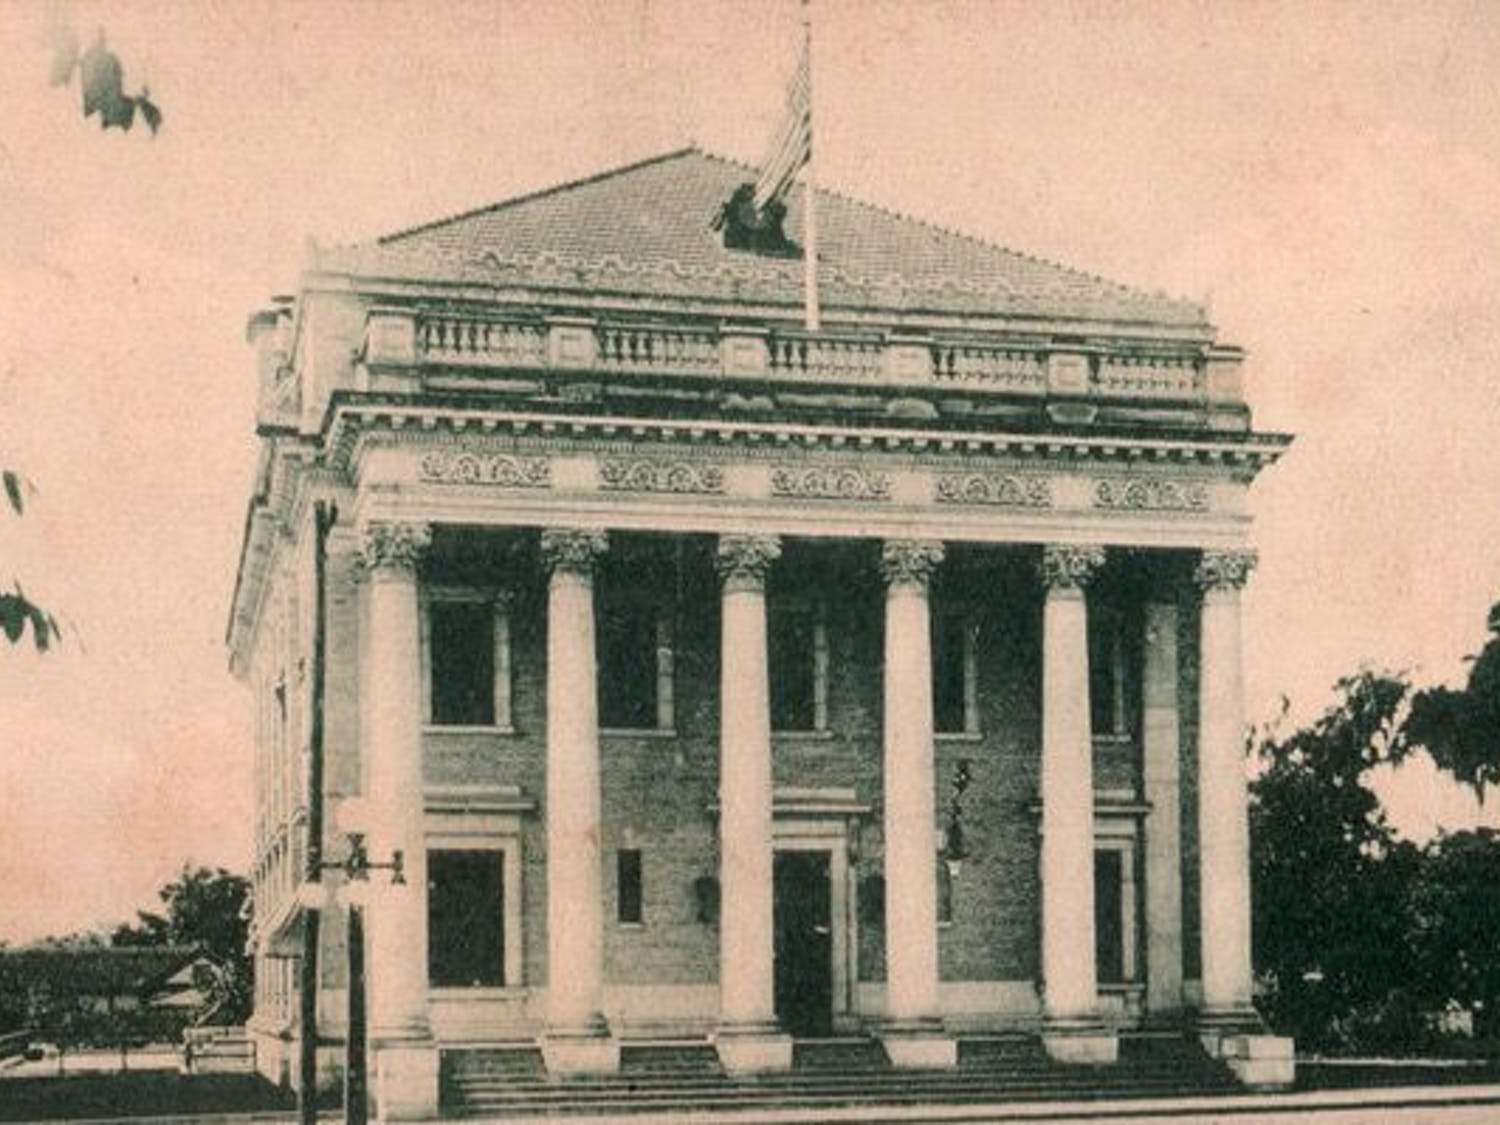 The building at25 Southeast Second Placenow houses the Hippodrome State Theatre, but began its life as a federal courthouse and post office in 1911.